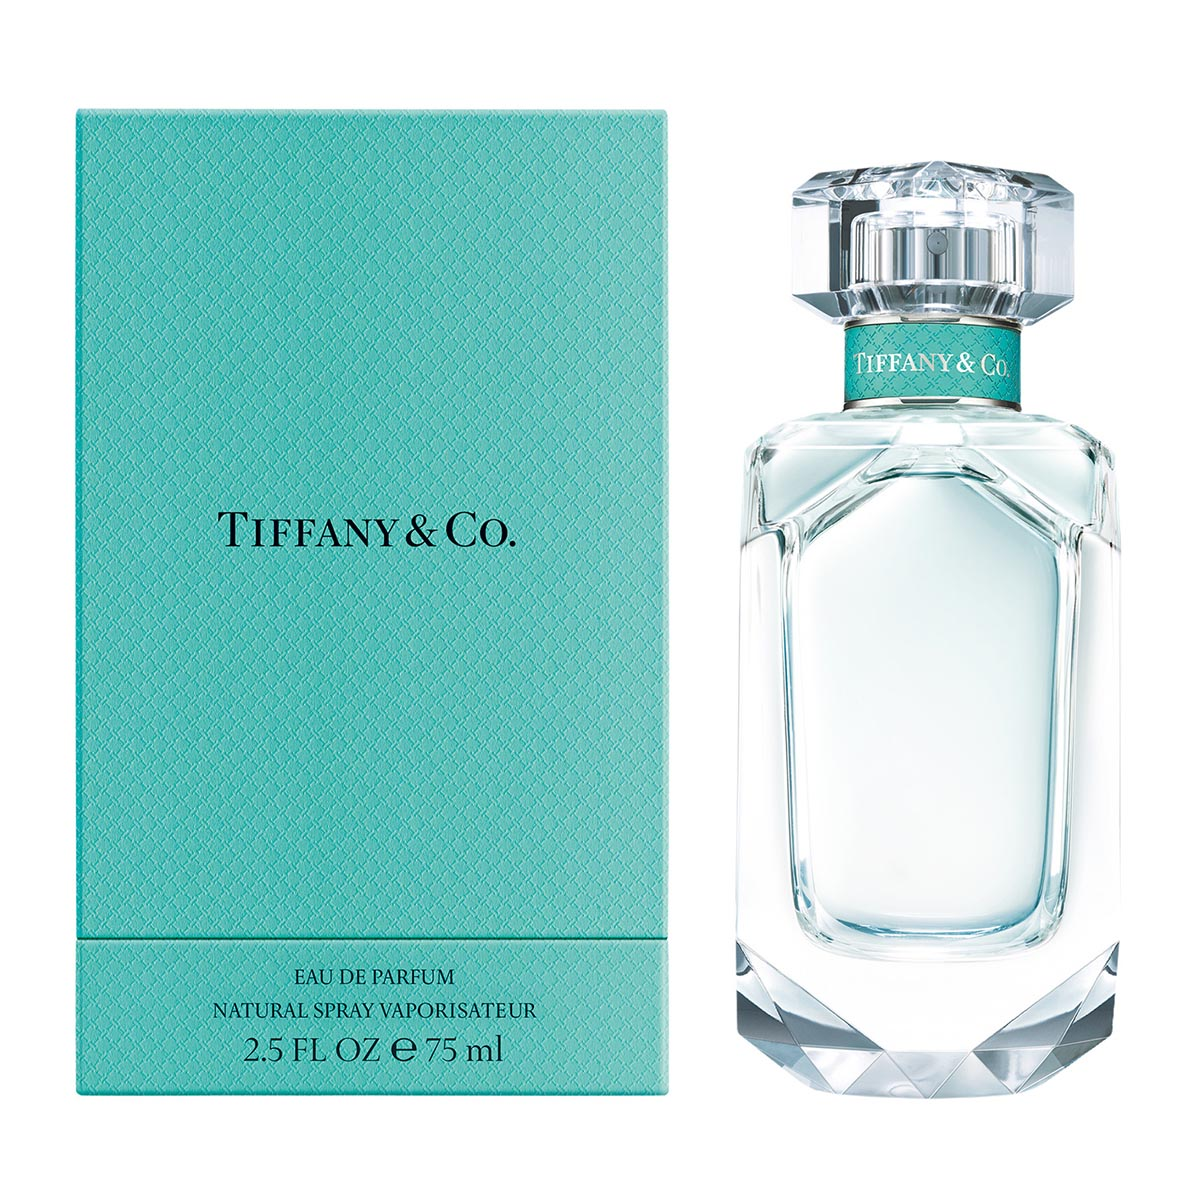 Tiffany co eau de parfum 75ml vaporizador